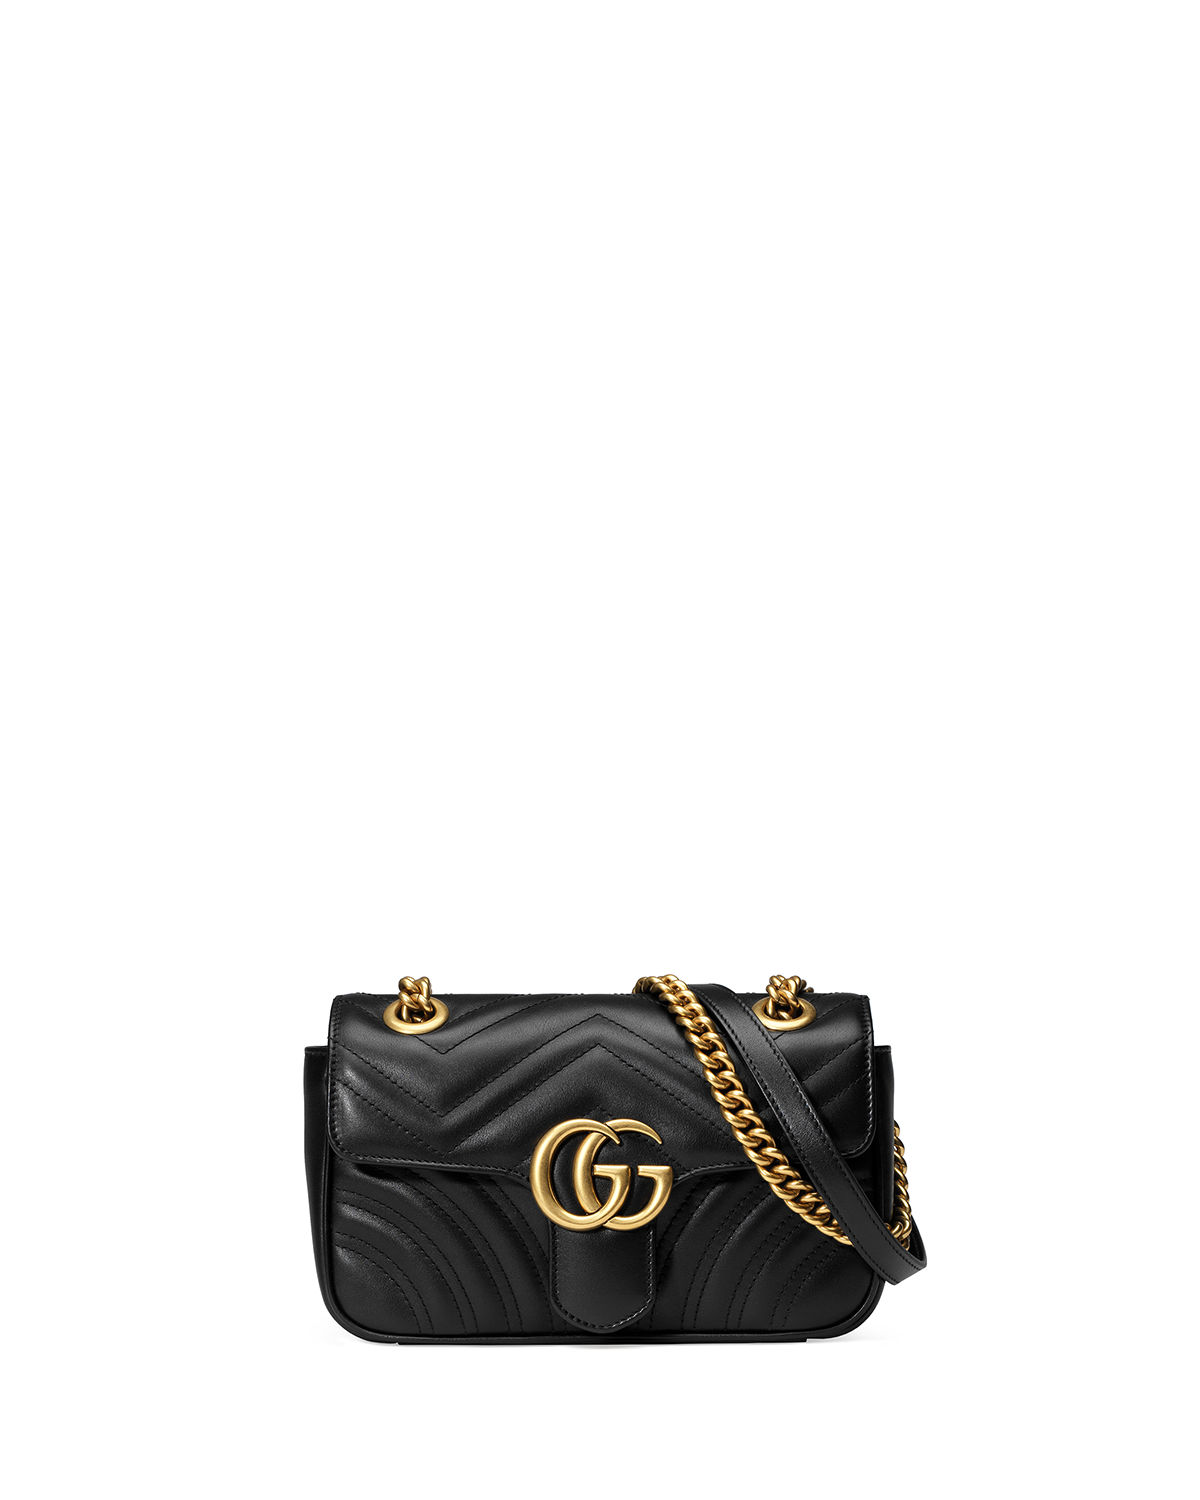 a93e59cdc397 Gucci GG Marmont 2.0 Mini Matelasse Shoulder Bag